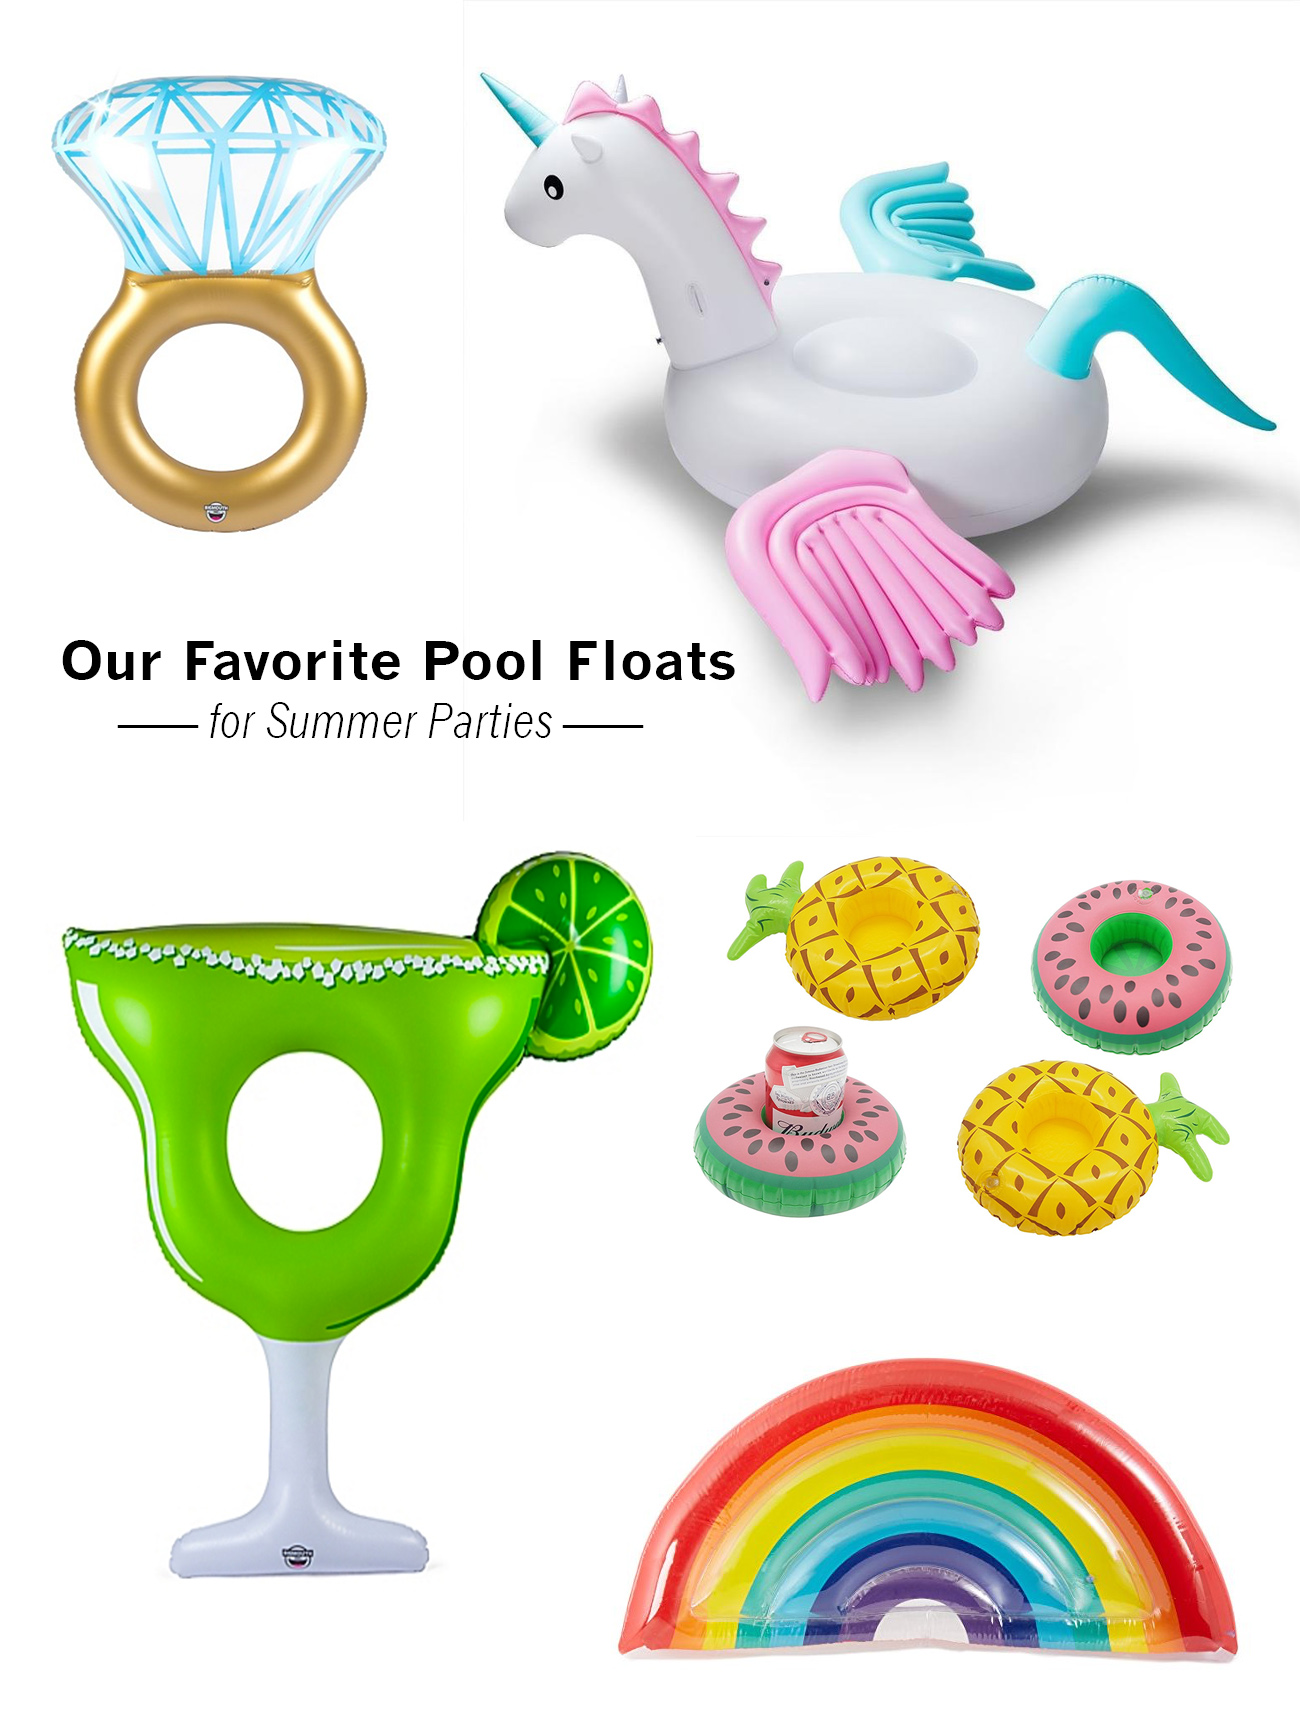 Best Pool Floats for Summer